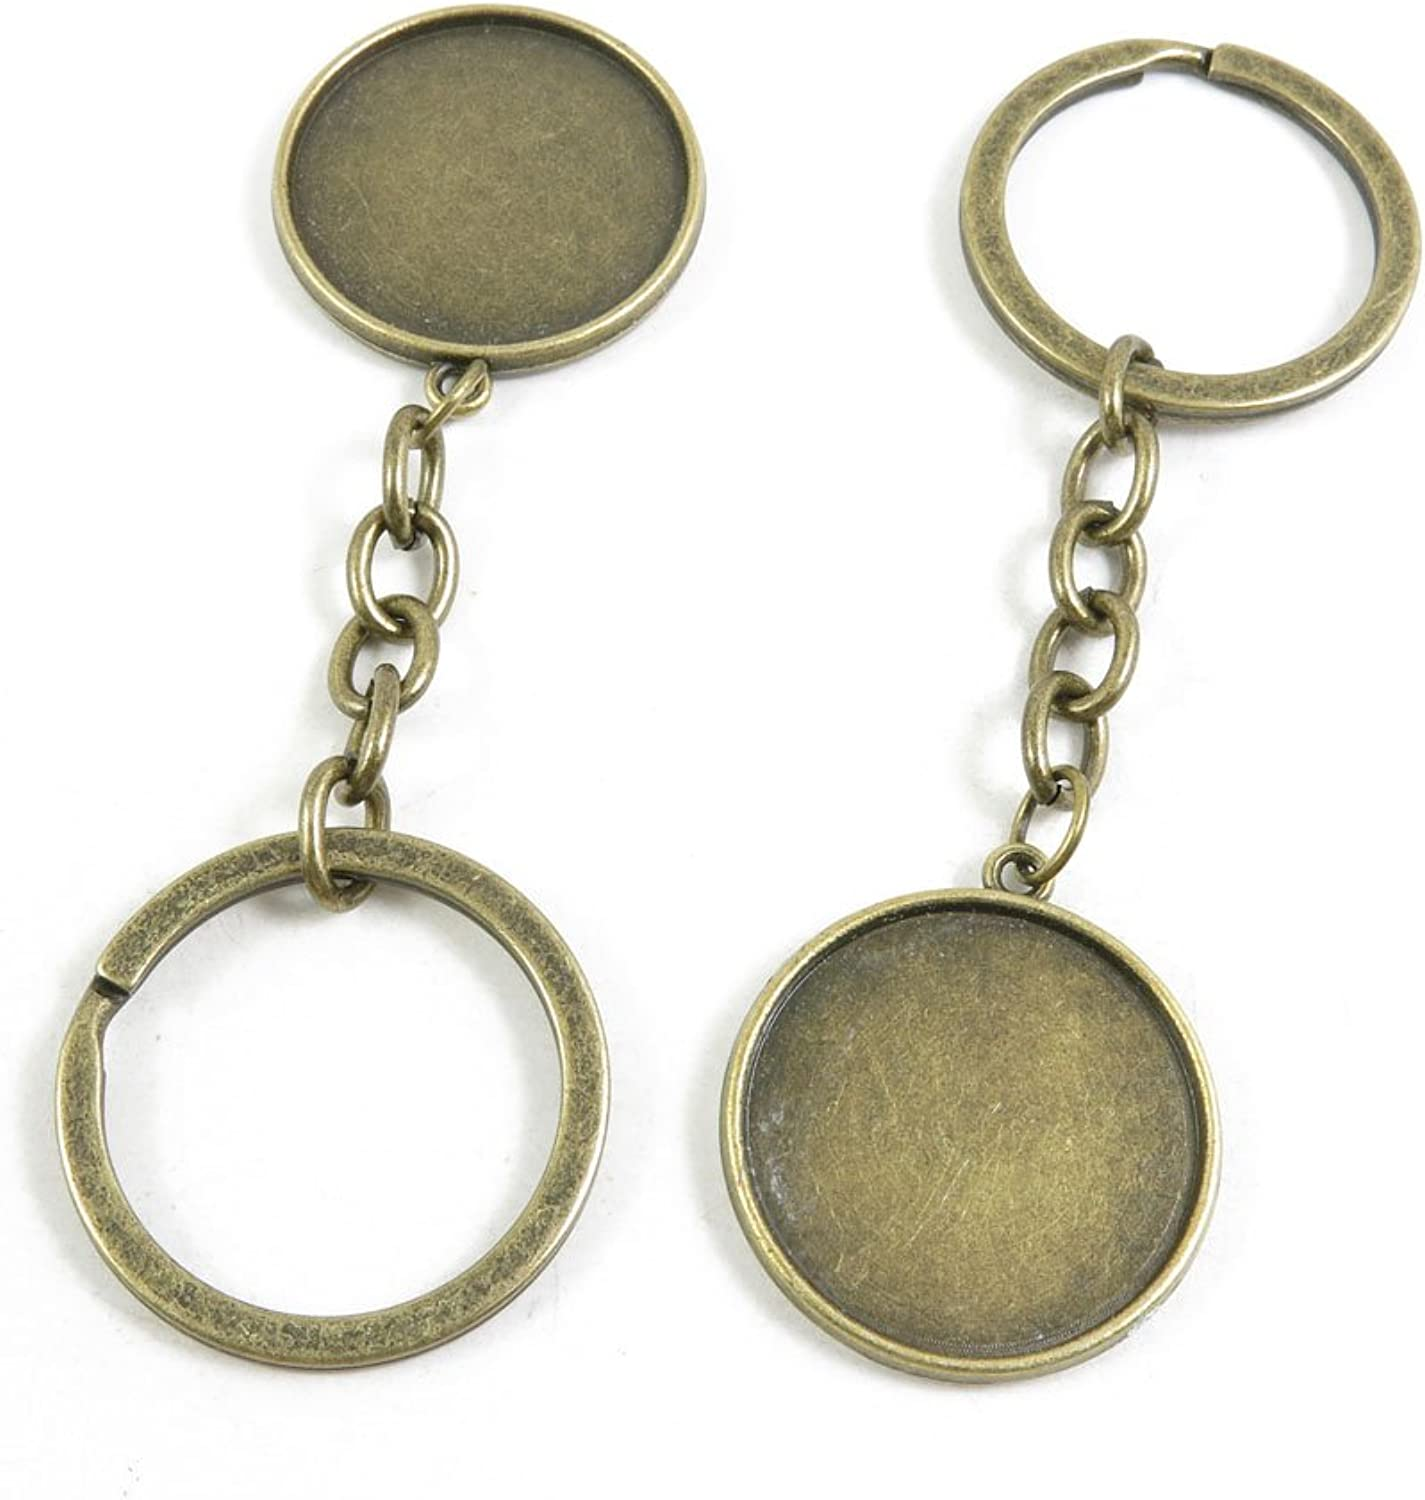 170 Pieces Fashion Jewelry Keyring Keychain Door Car Key Tag Ring Chain Supplier Supply Wholesale Bulk Lots B6NU6 Double Sides Cabochon Frame Setting 25mm